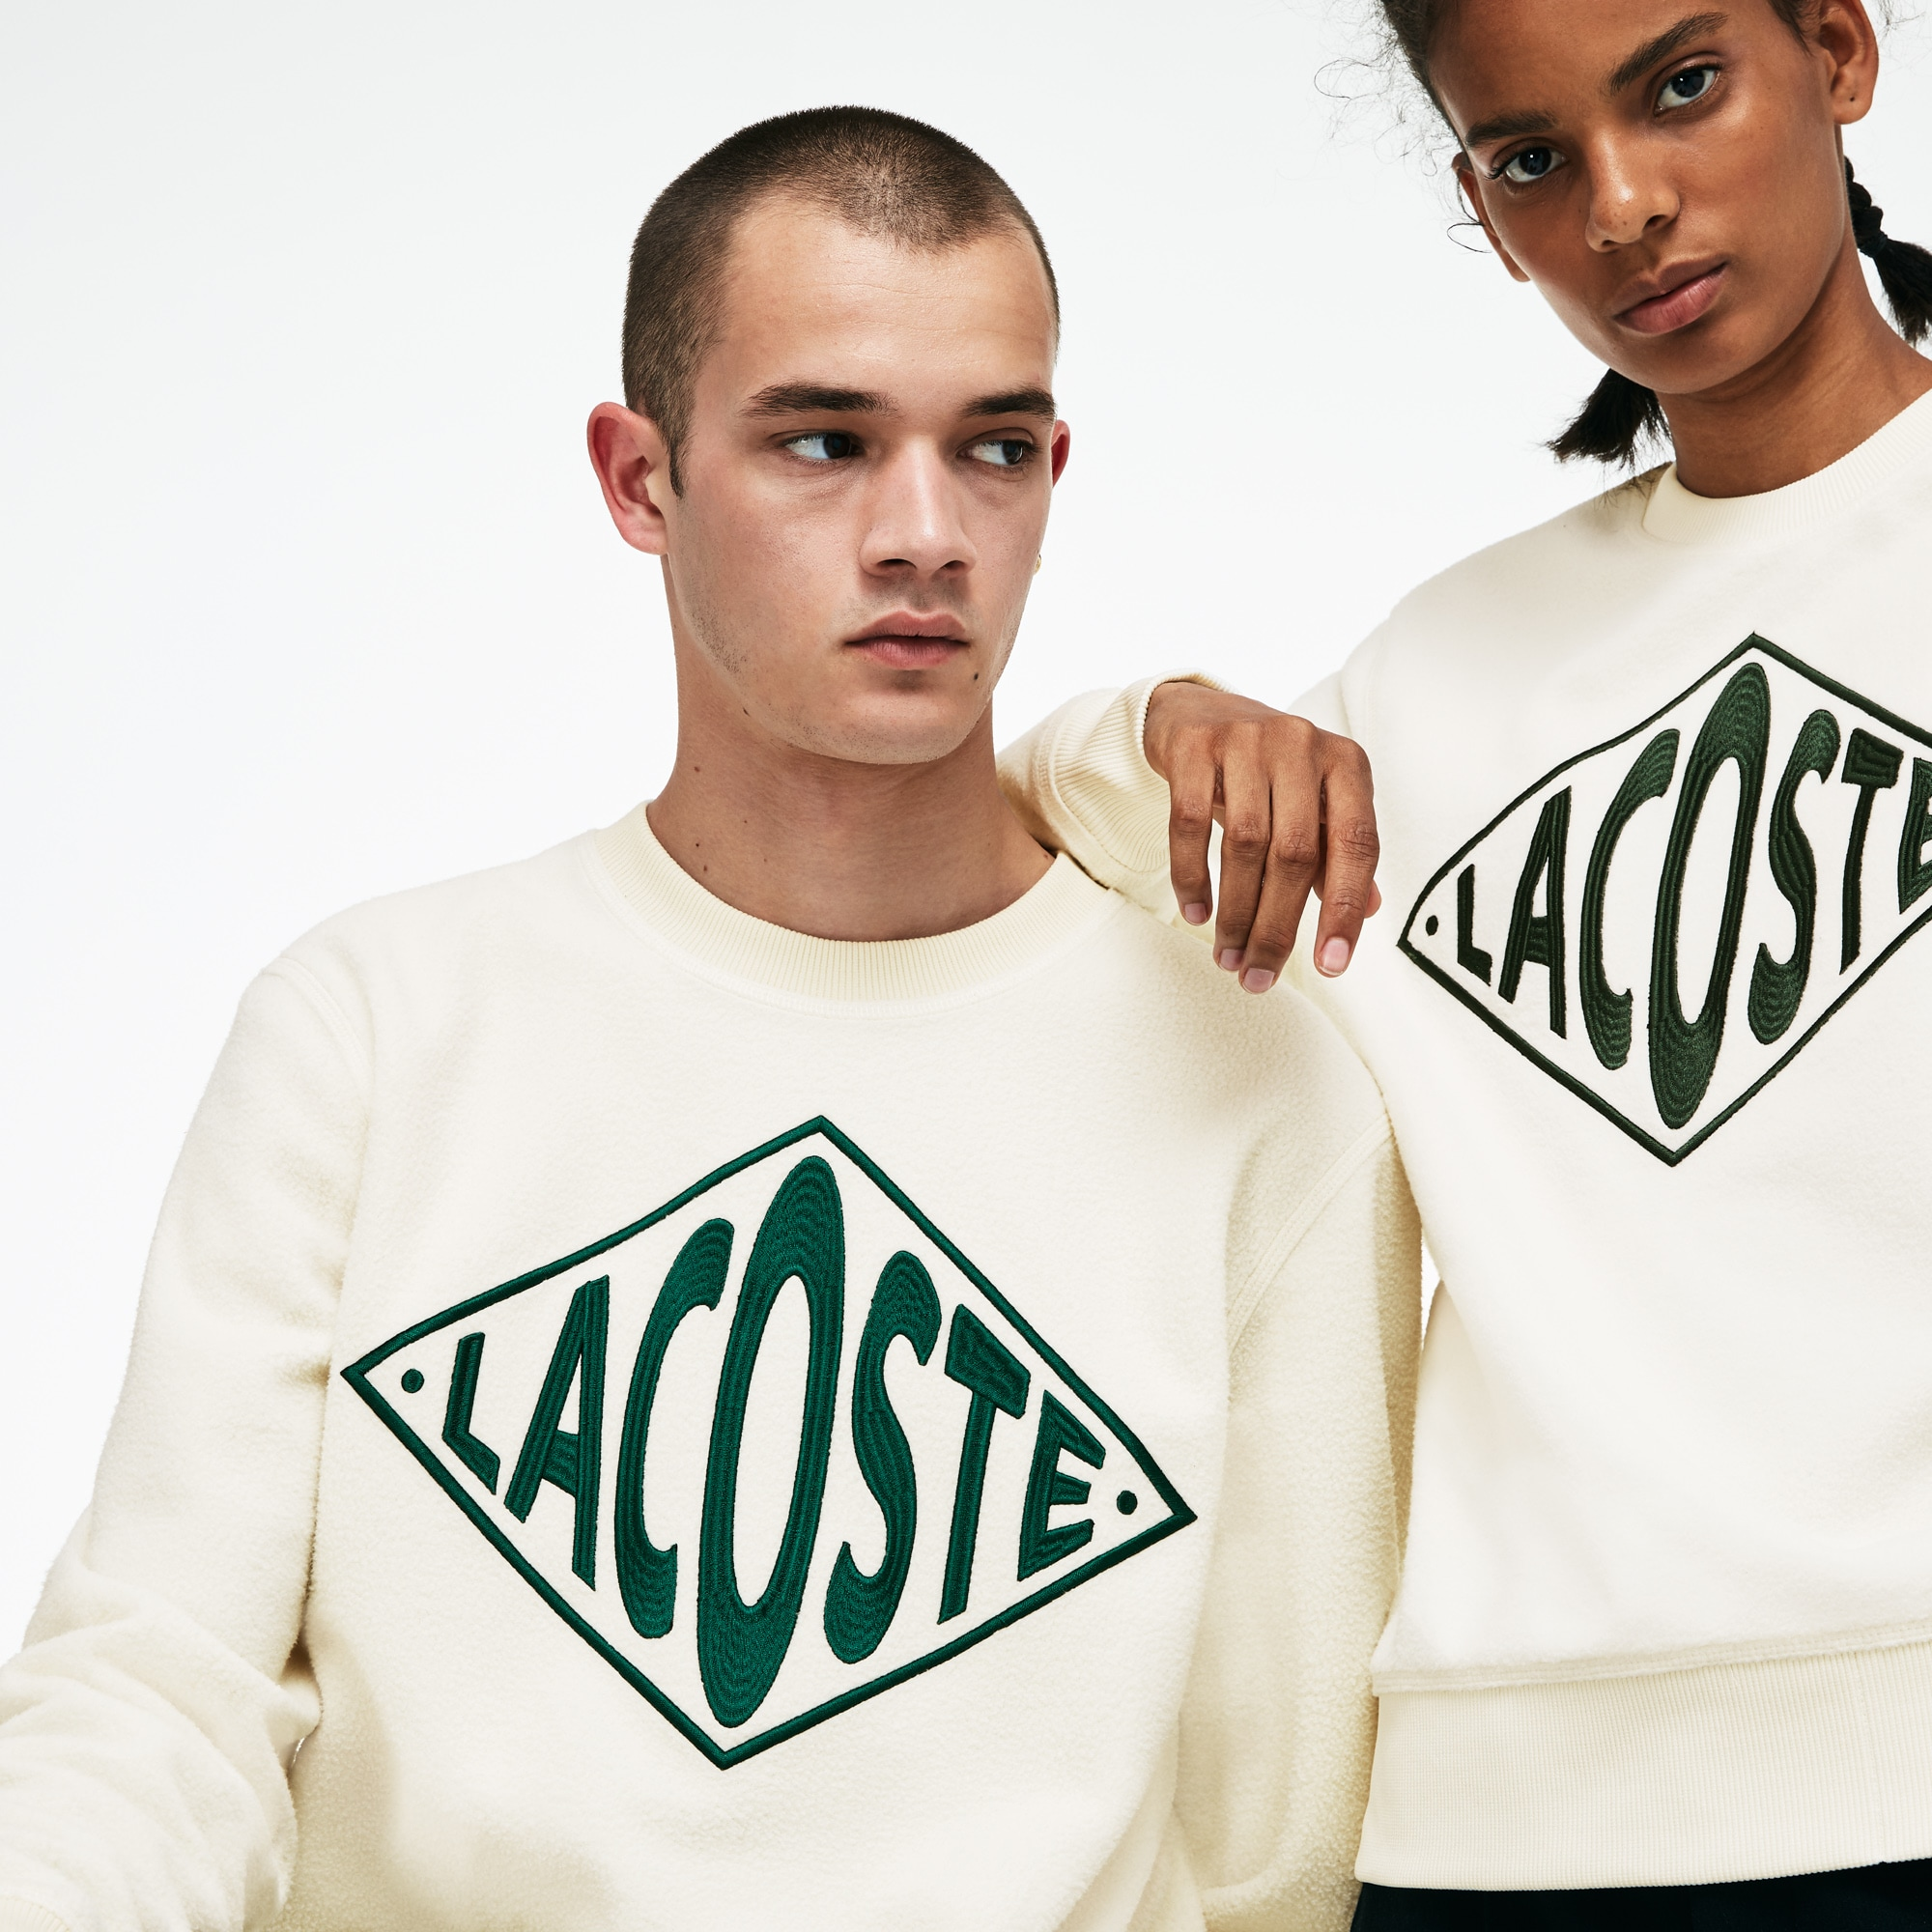 LACOSTE L!VE Rundhals XL Sweatshirt mit Stickerei